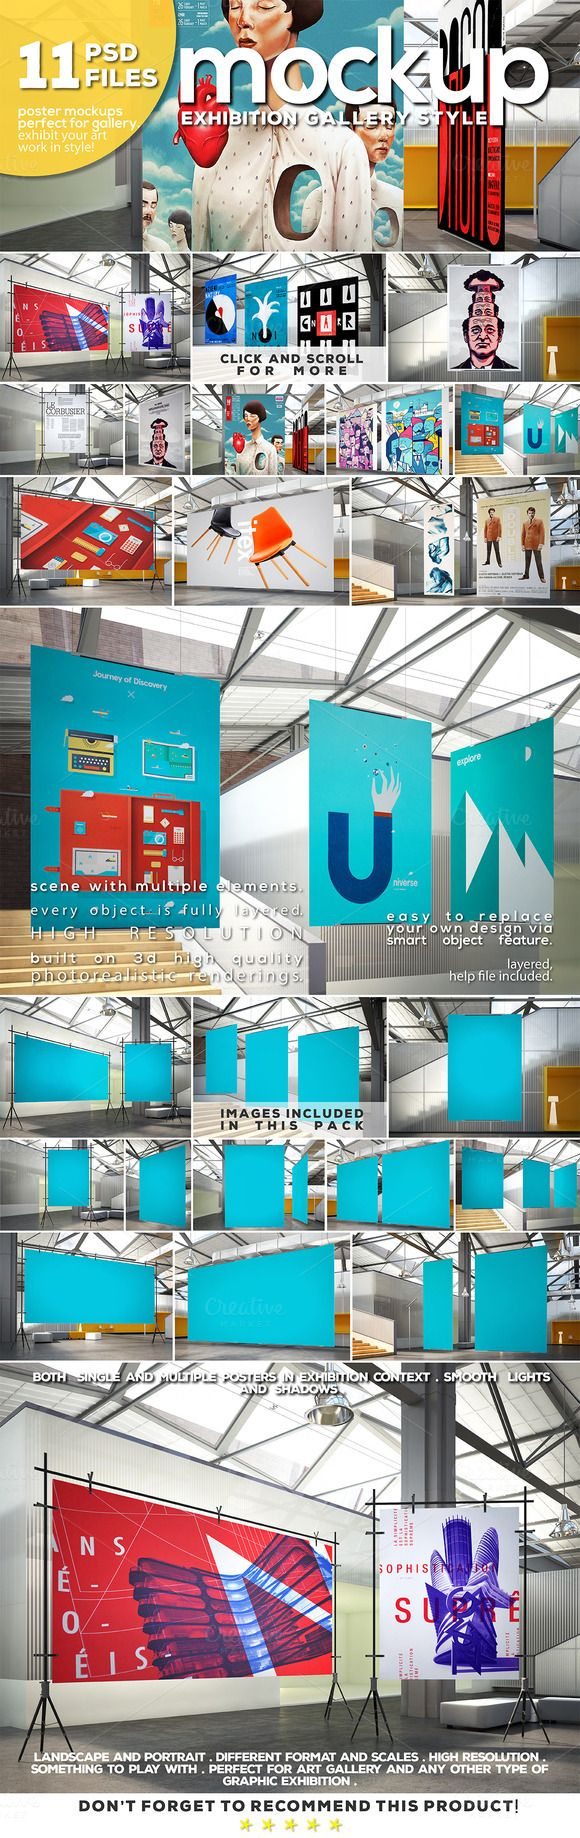 Gallery Exhibition Poster Mockups by DESIGNbook on Creative Market